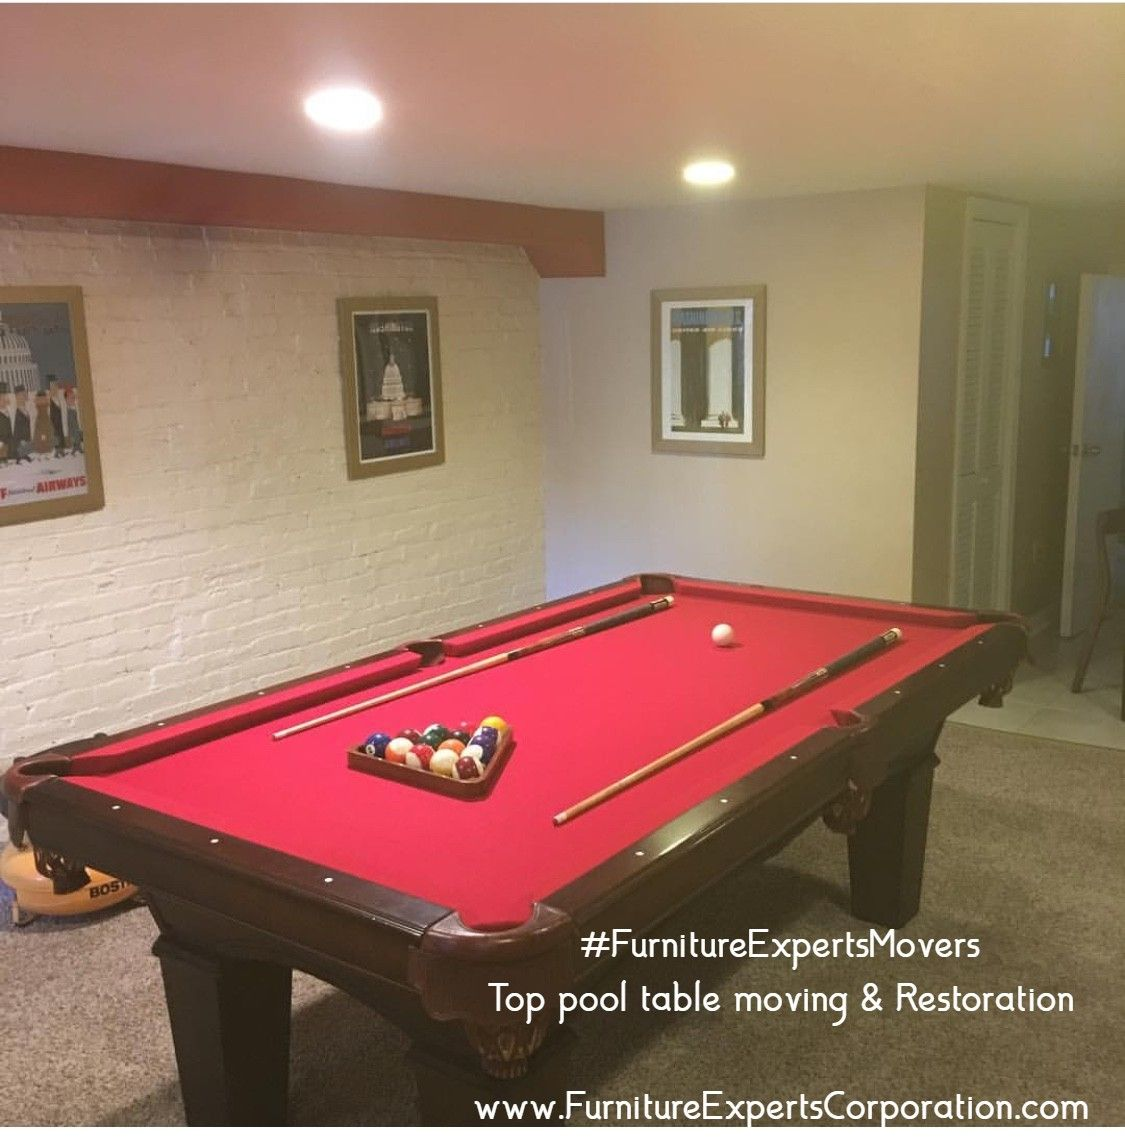 Pool table refelting | Pool table movers, Furniture ...